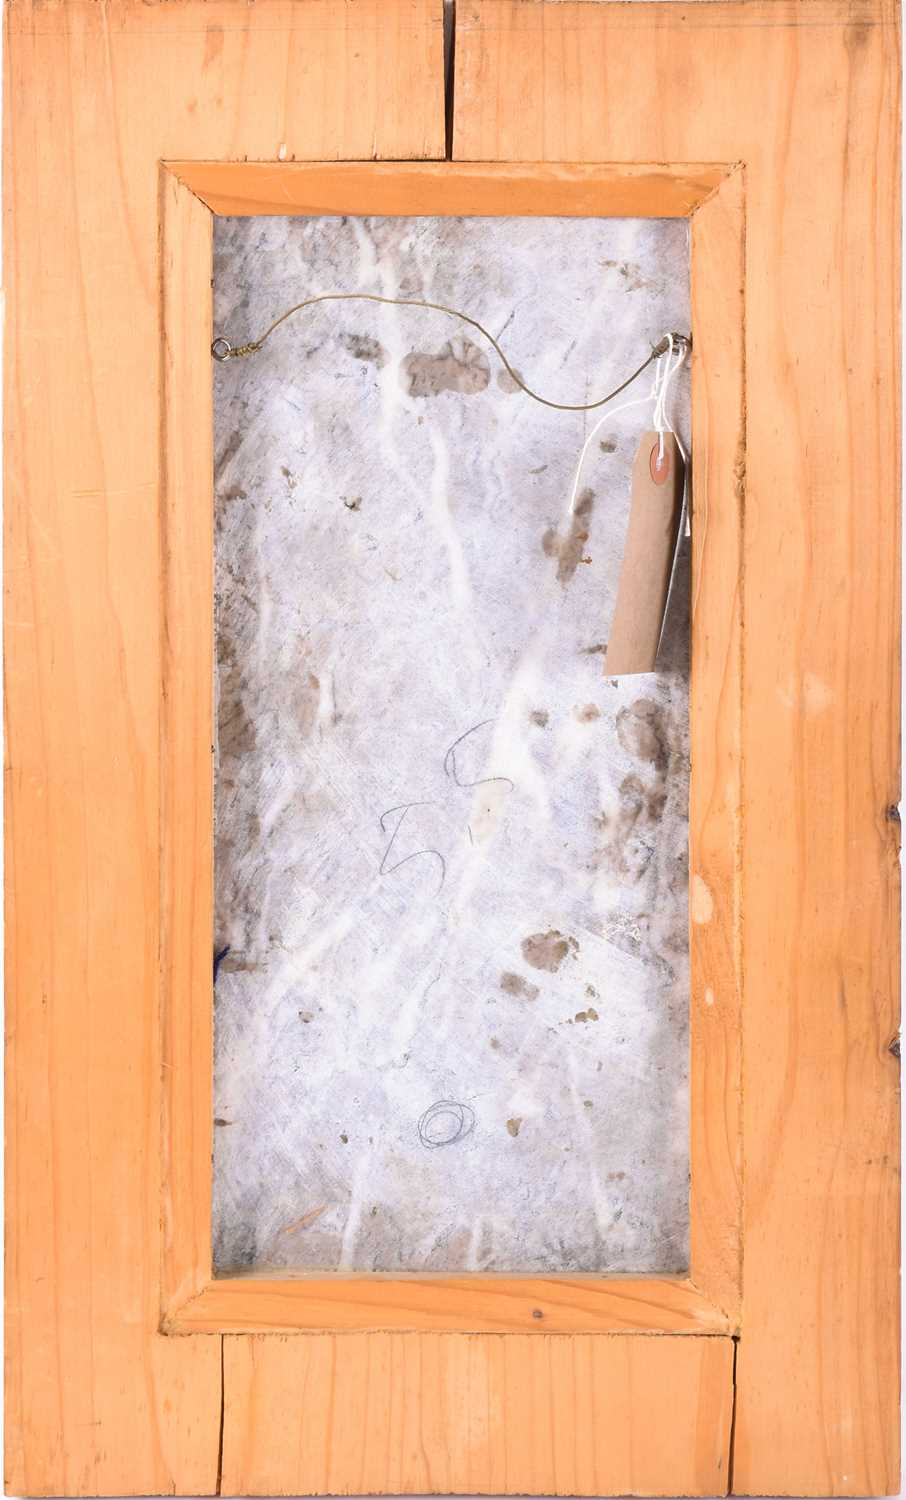 Lot 59 - Tullia Matania (XX), an unusual marble plaque hand-etched/incised with the outline of a horse, inset